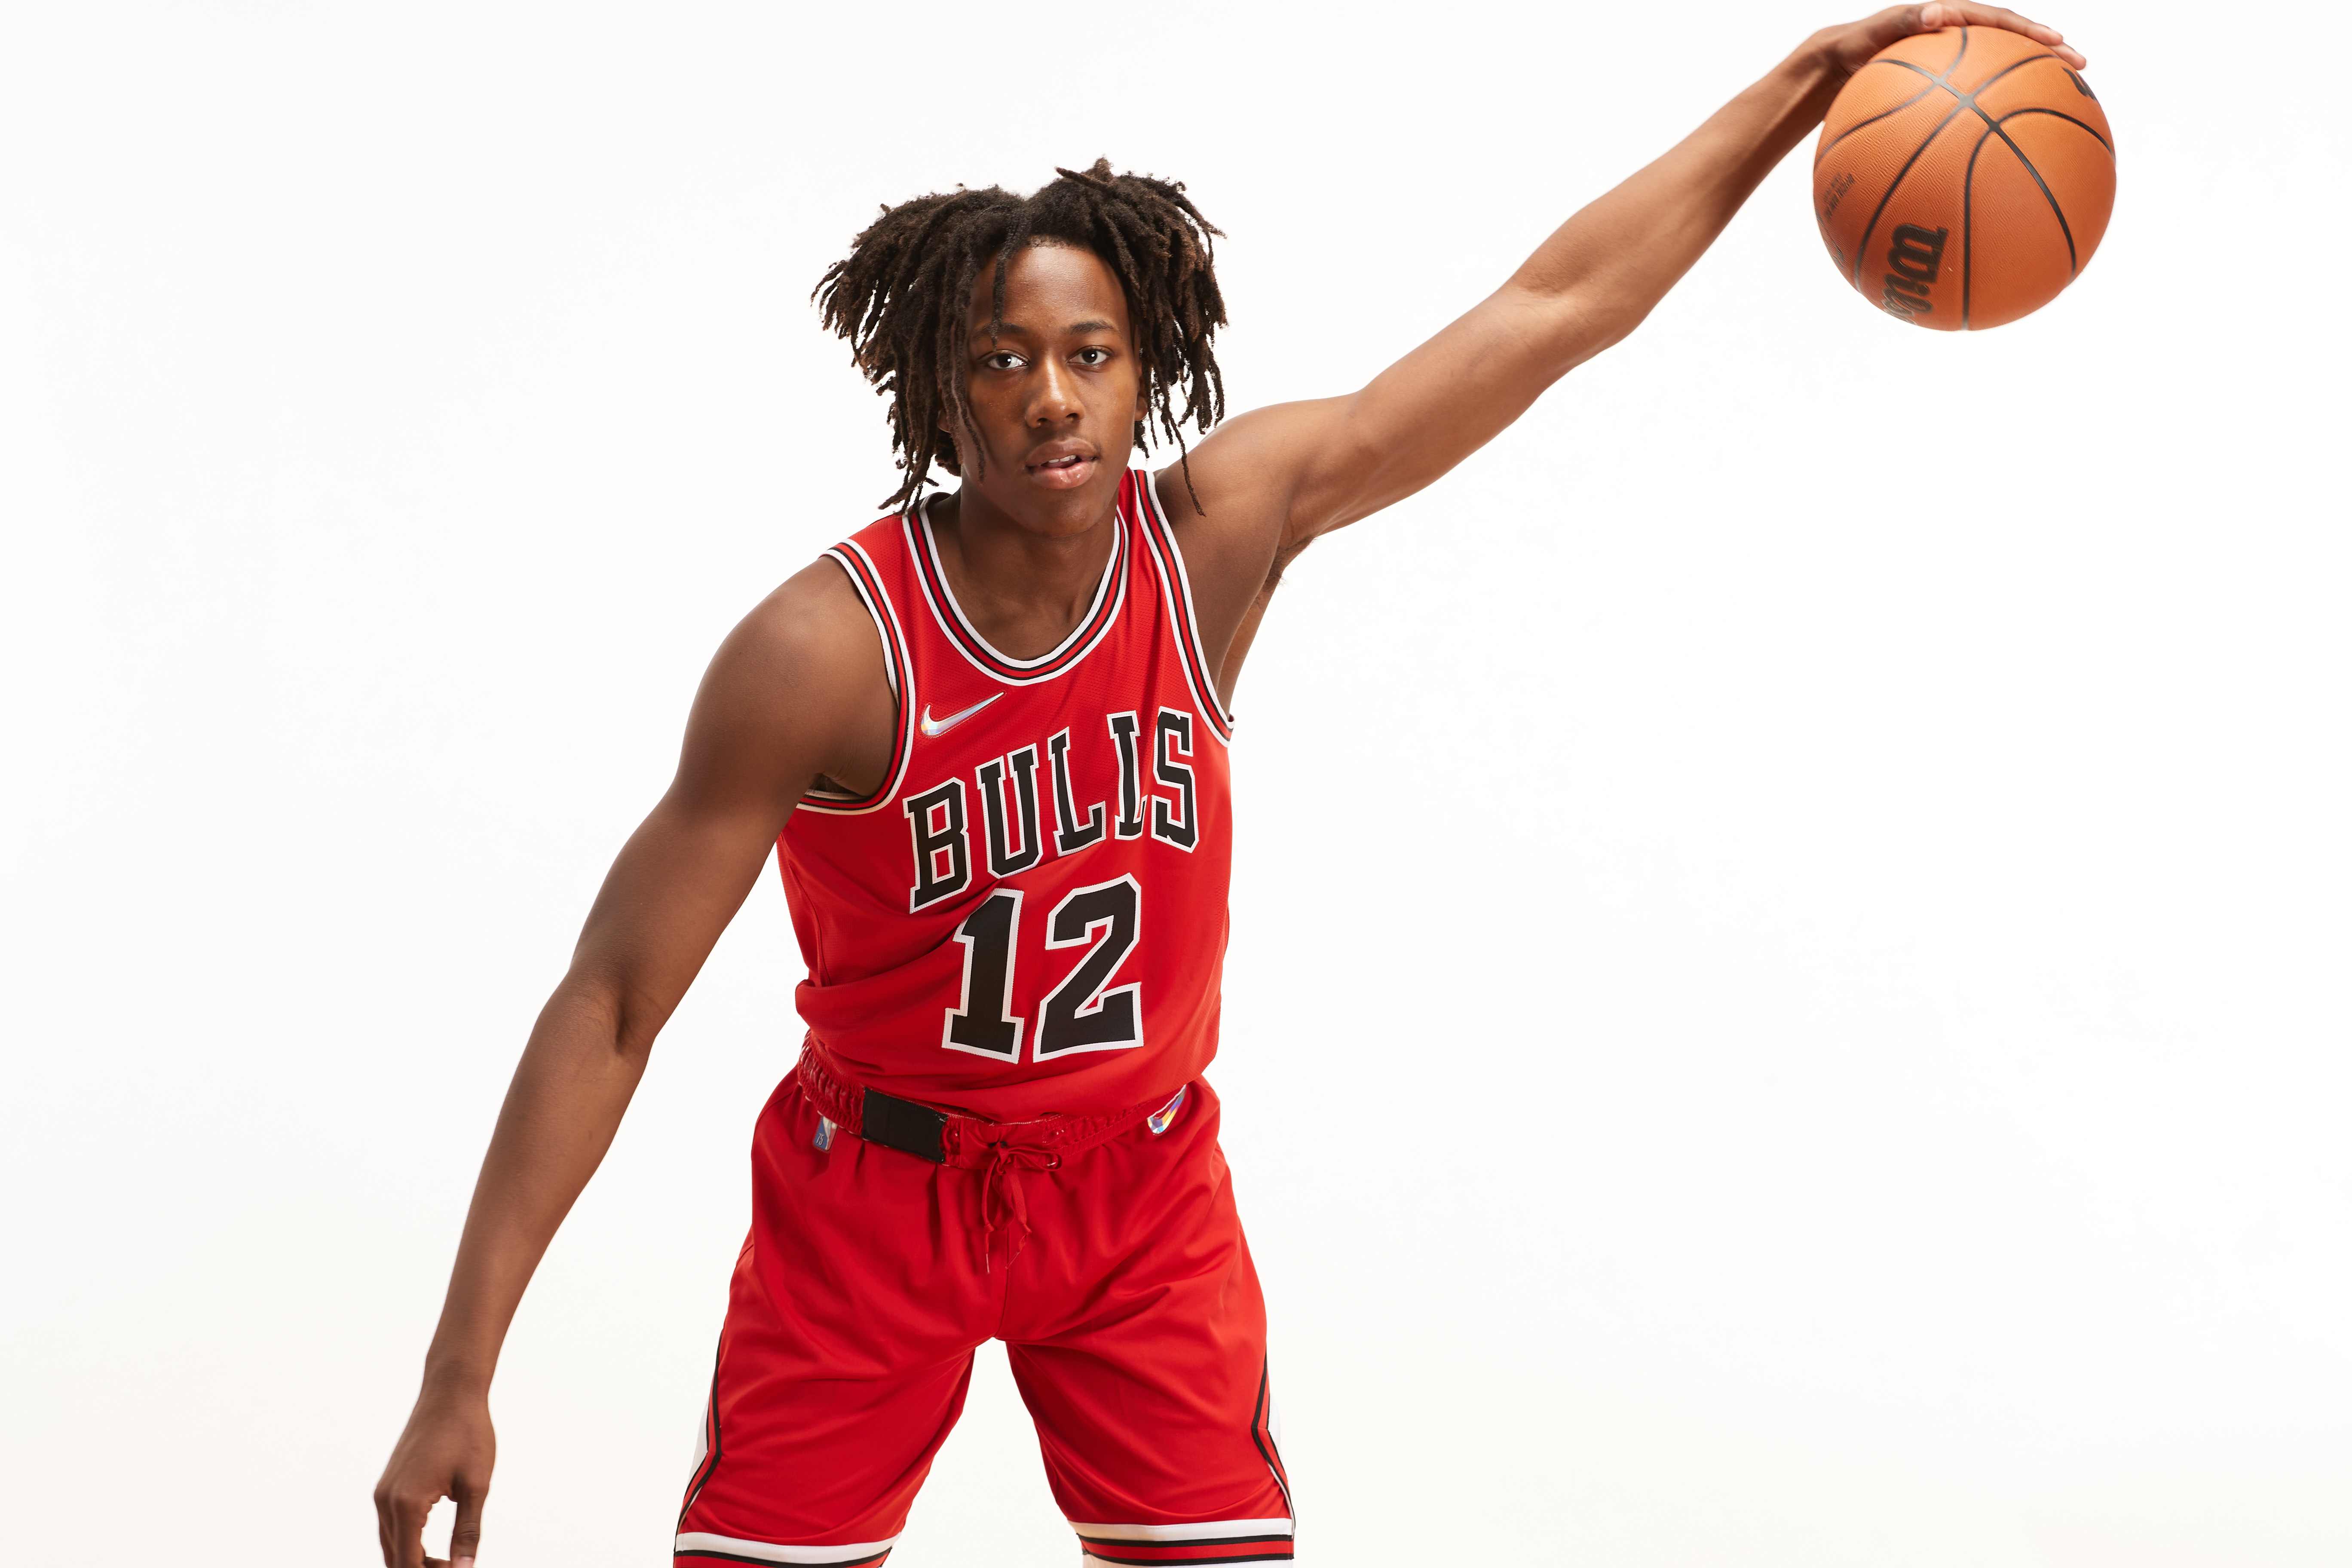 Bulls rookie Ayo Dosunmu might be buried on the team's depth chart, but he has time to change minds.